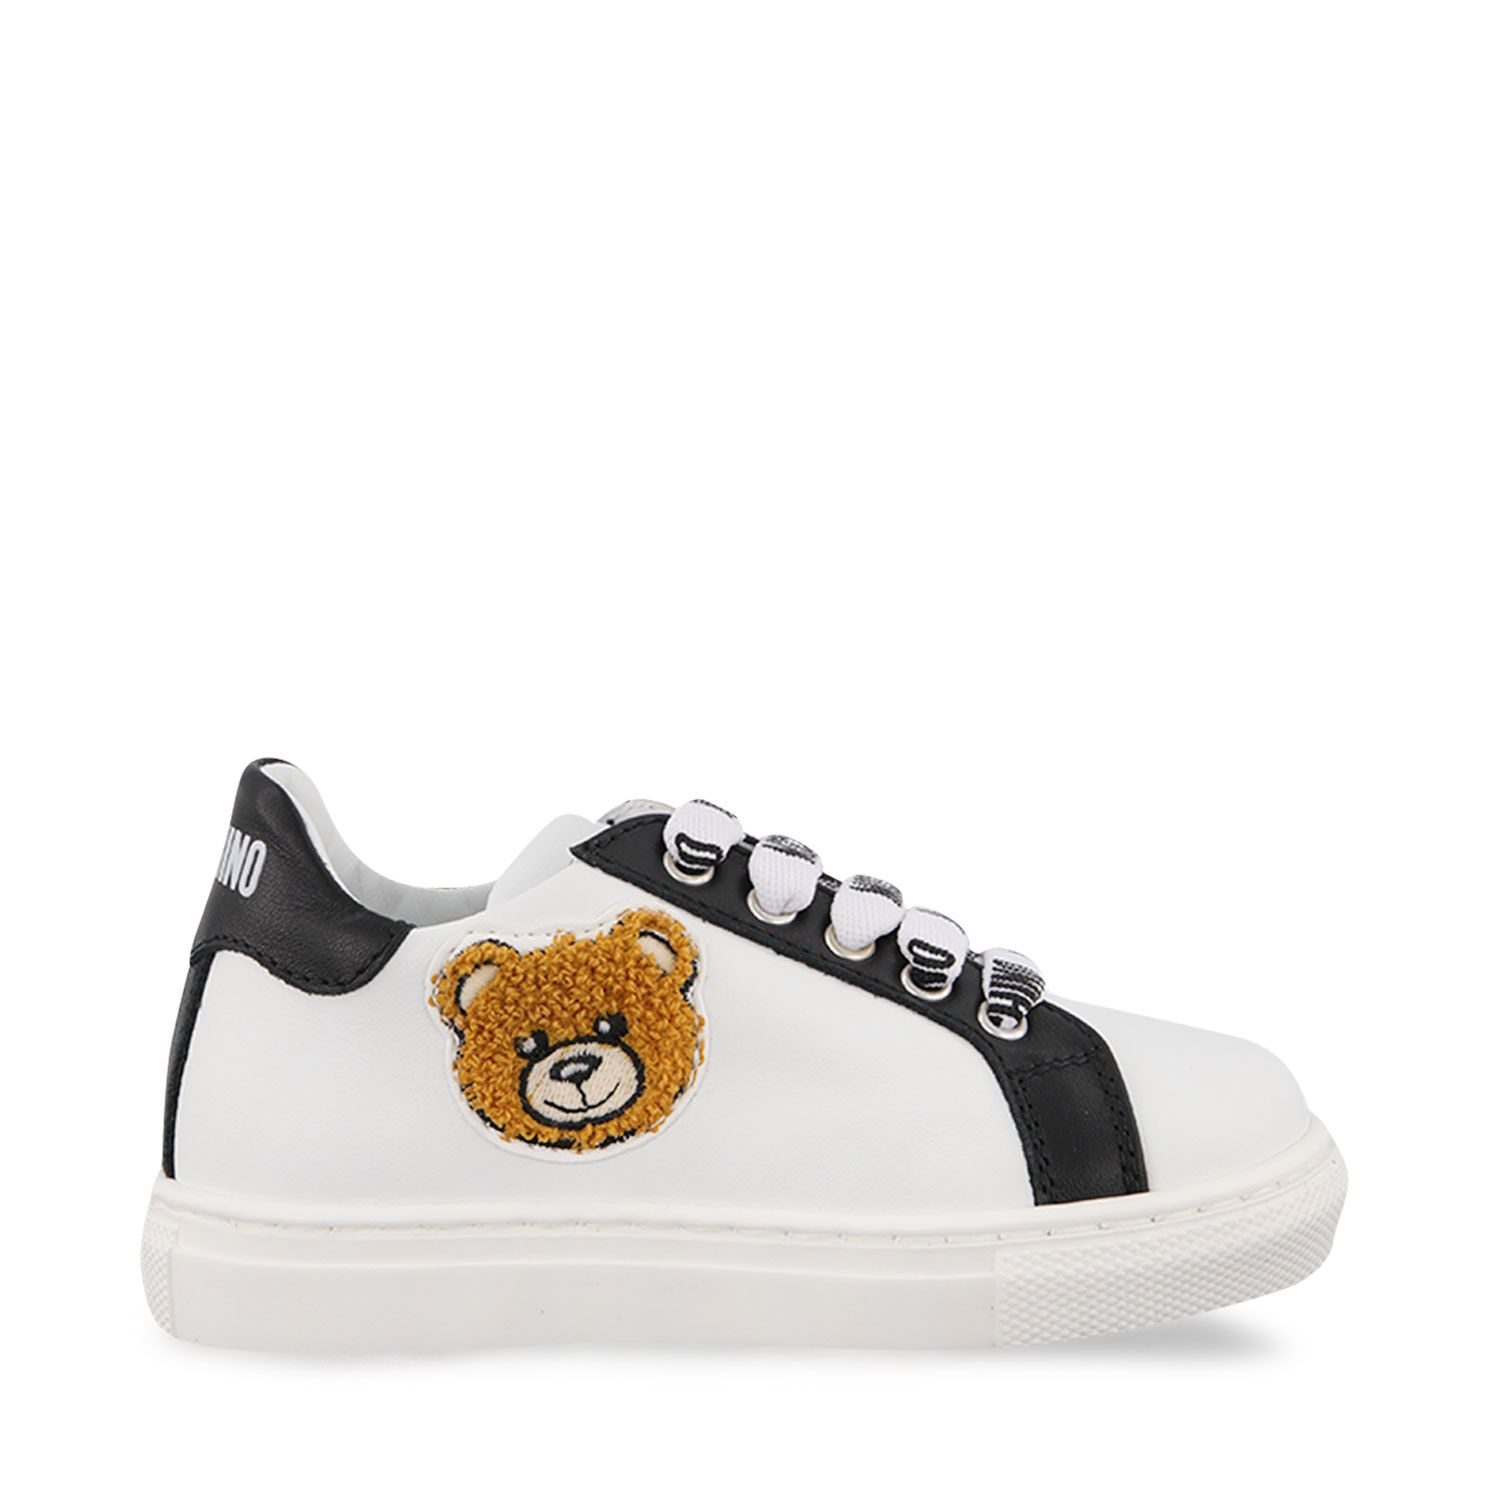 Picture of Moschino 67389 kids sneakers black